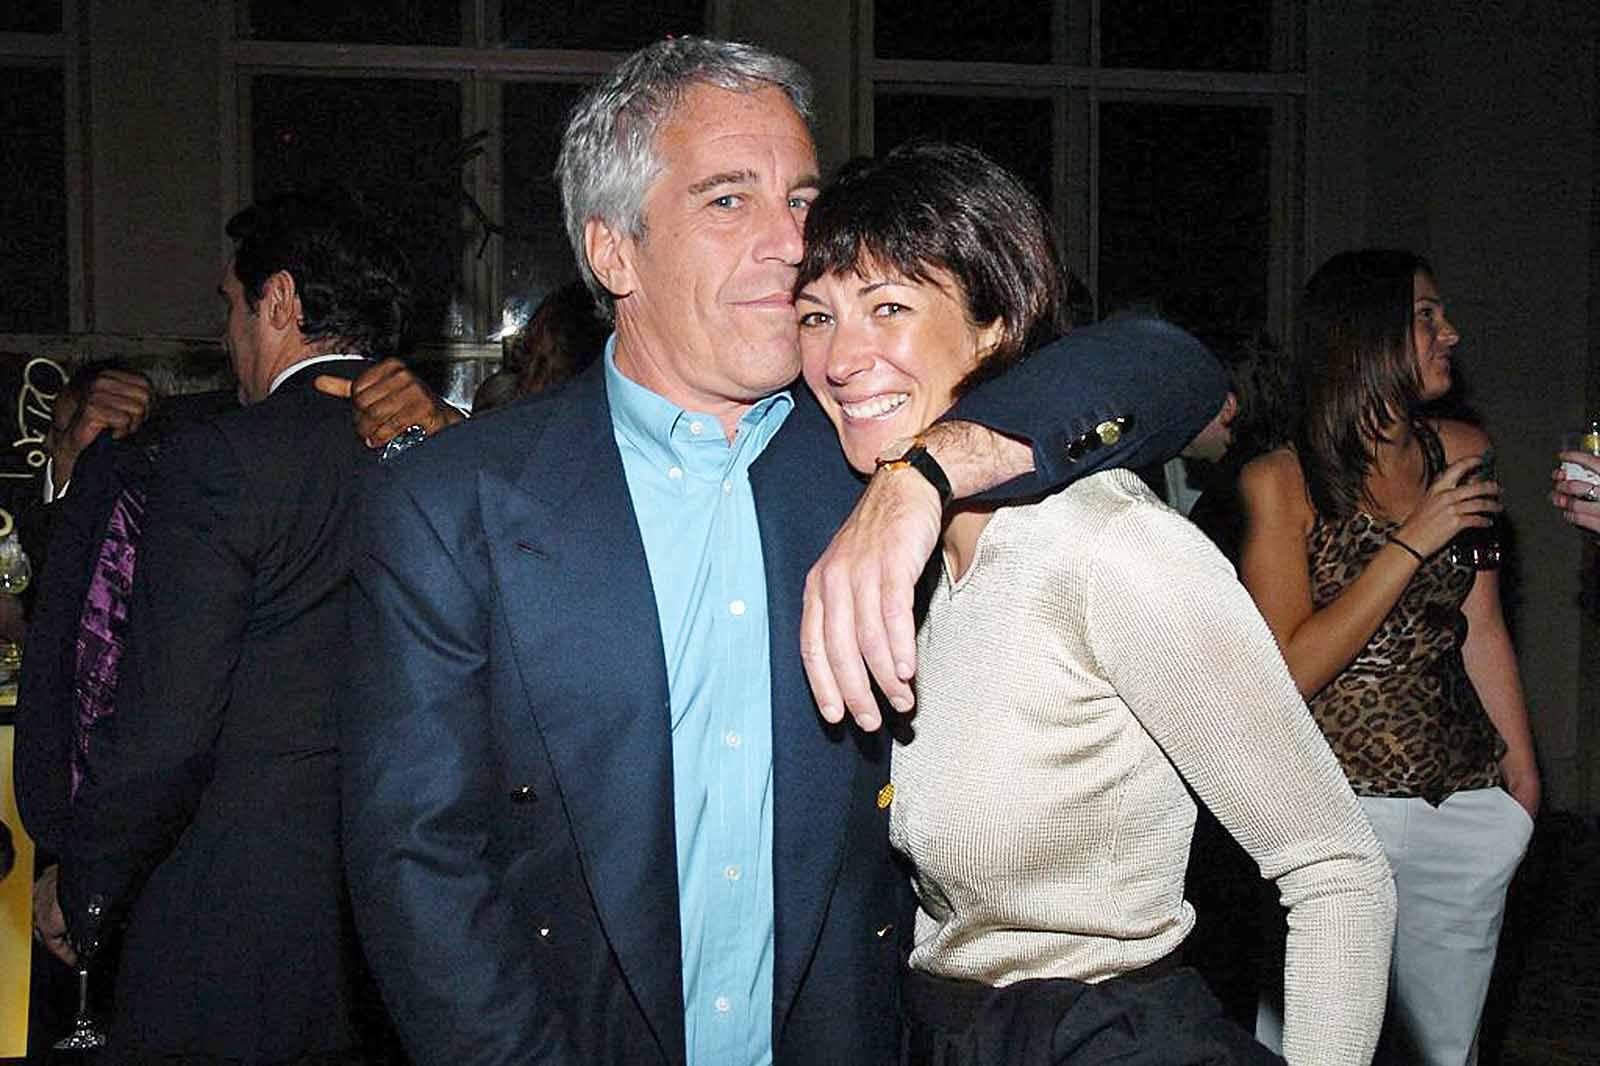 A new woman is speaking out now against Ghislaine Maxwell and Jeffrey Epstein. Hear her harrowing story of abuse at the hands of the socialites.